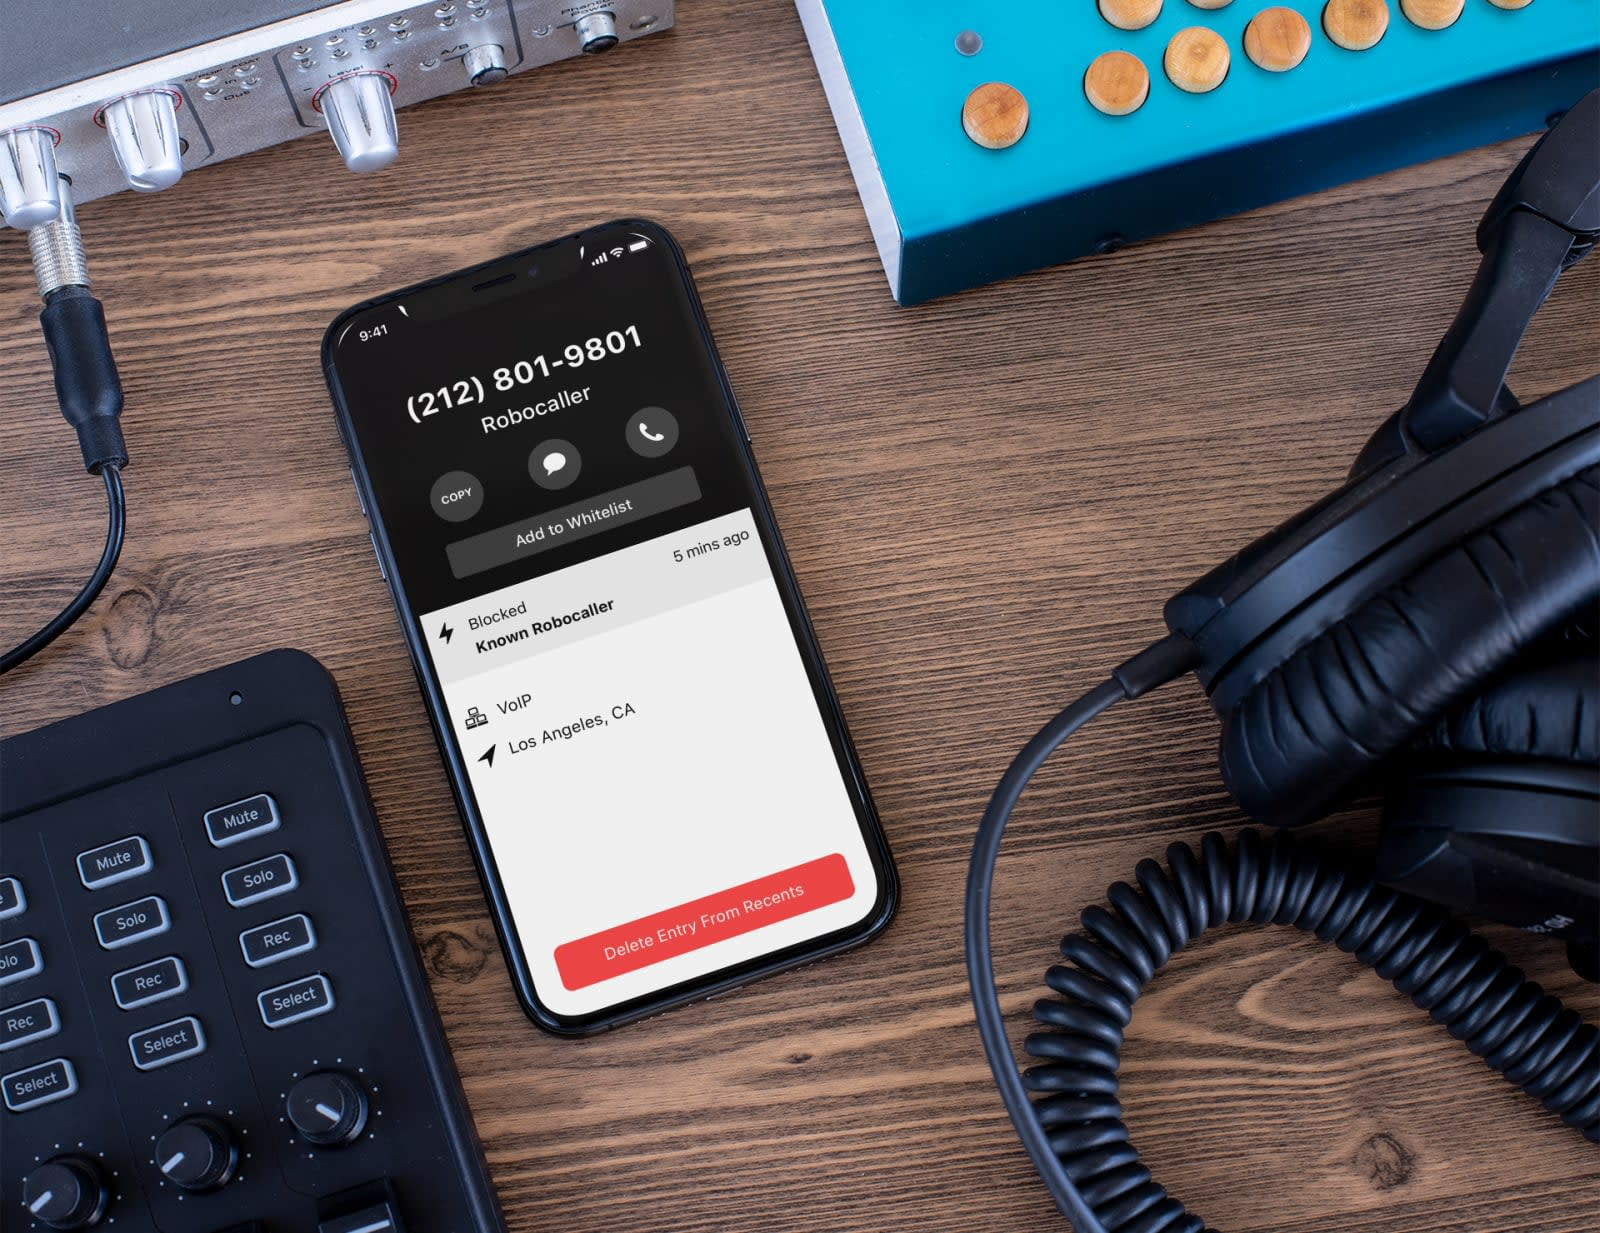 Firewall app promises to keep robocalls from ringing your phone